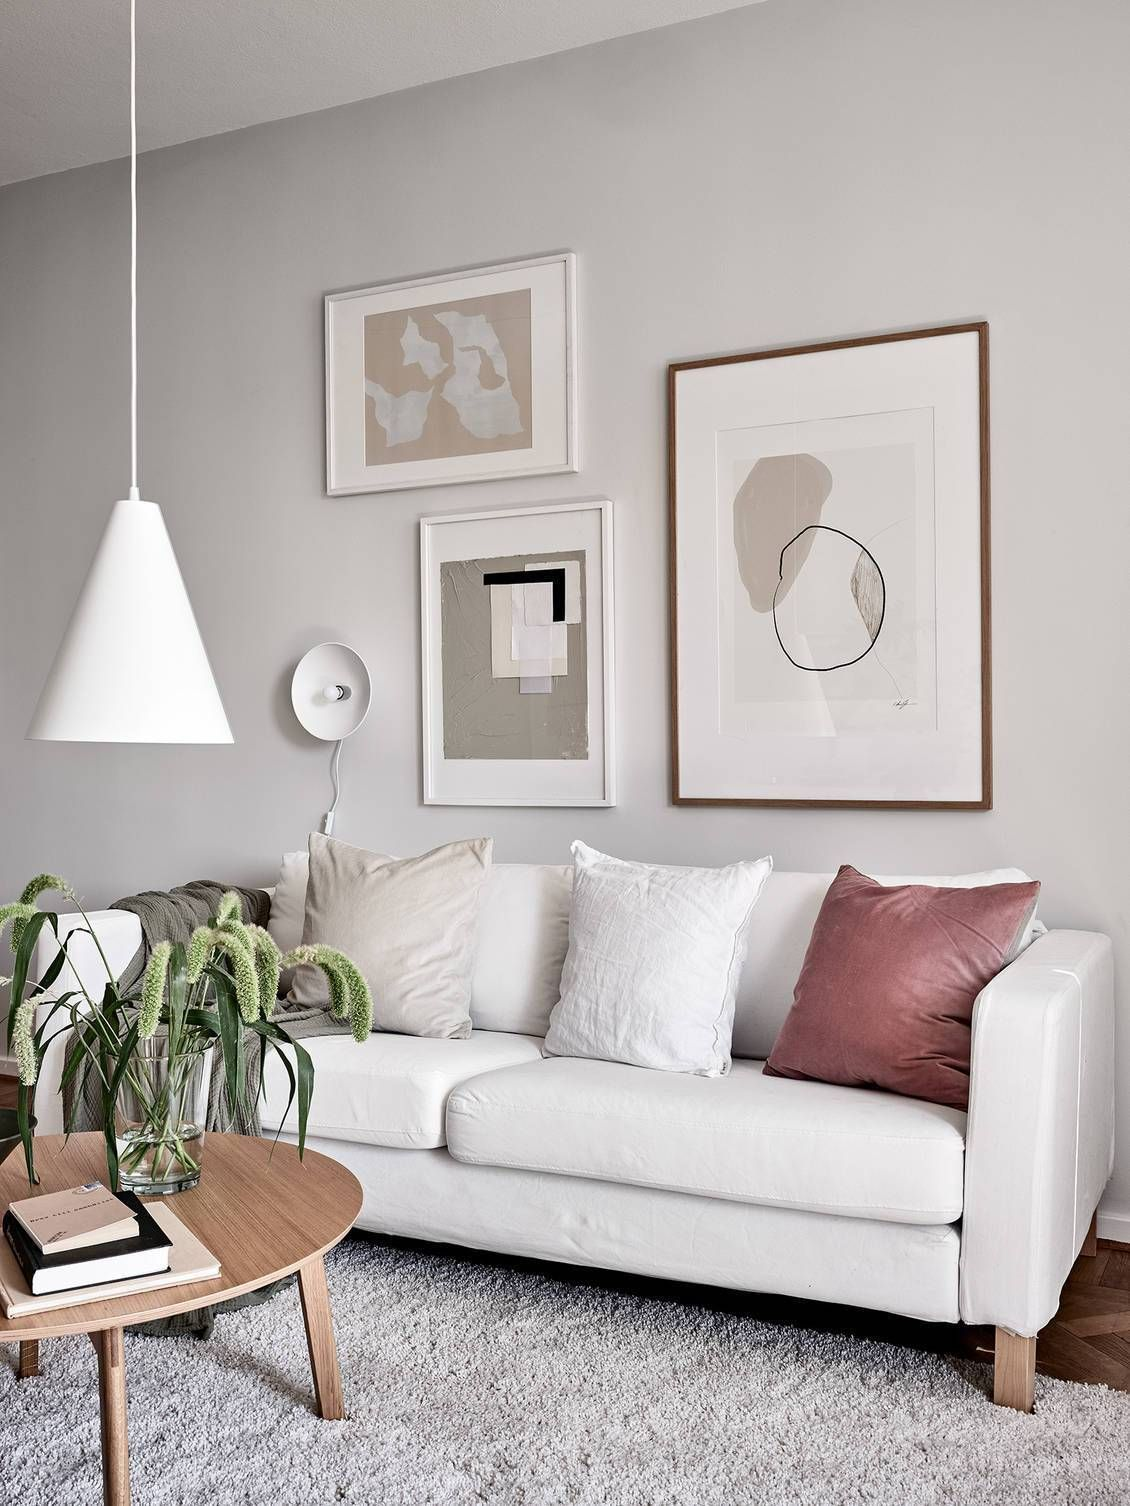 Living room in beige and nude